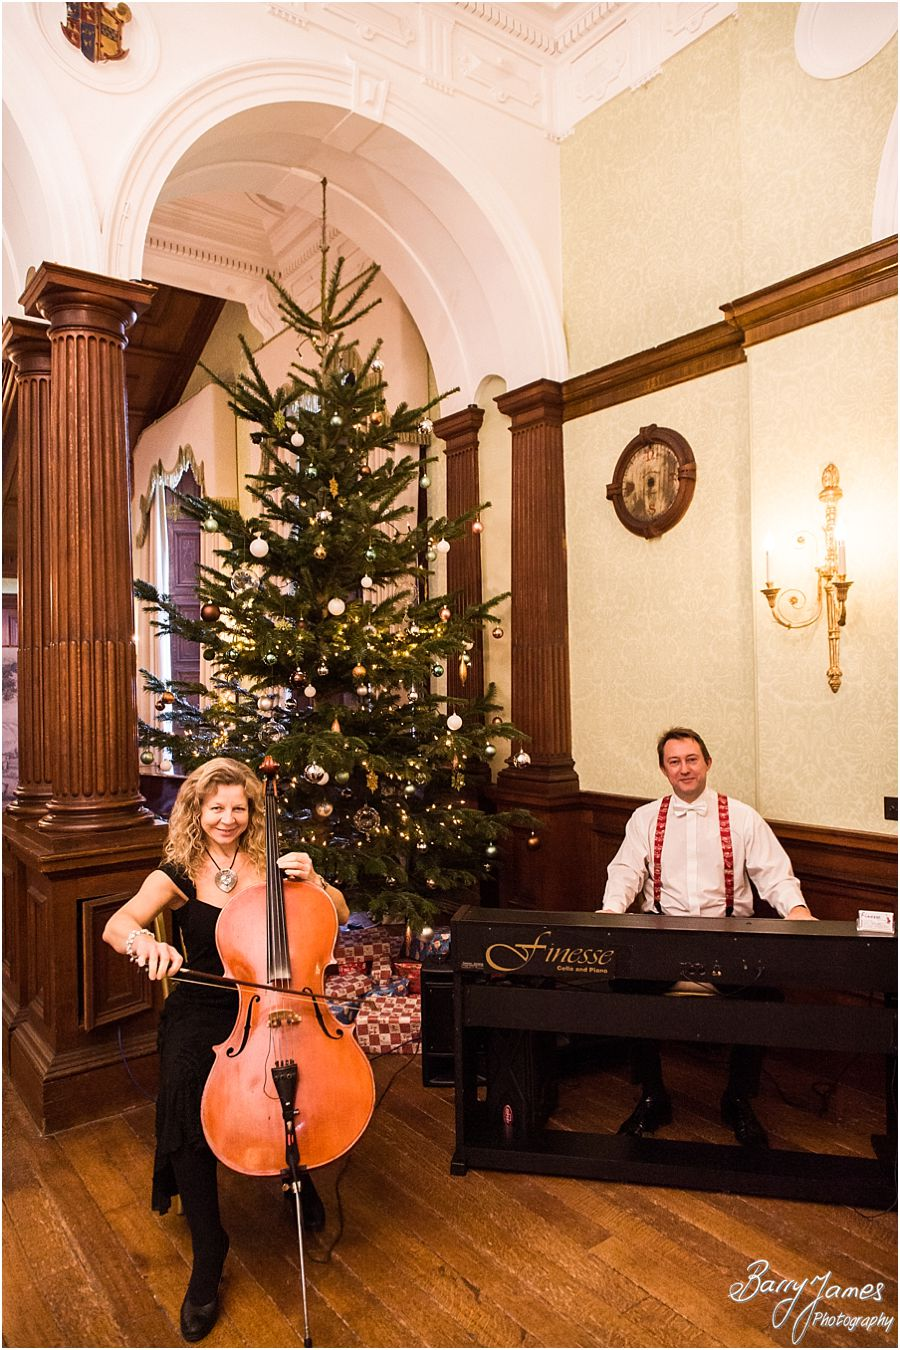 Finesse Piano and Cello at Sandon Hall in Stafford by Stafford Recommended Wedding Photographer Barry James